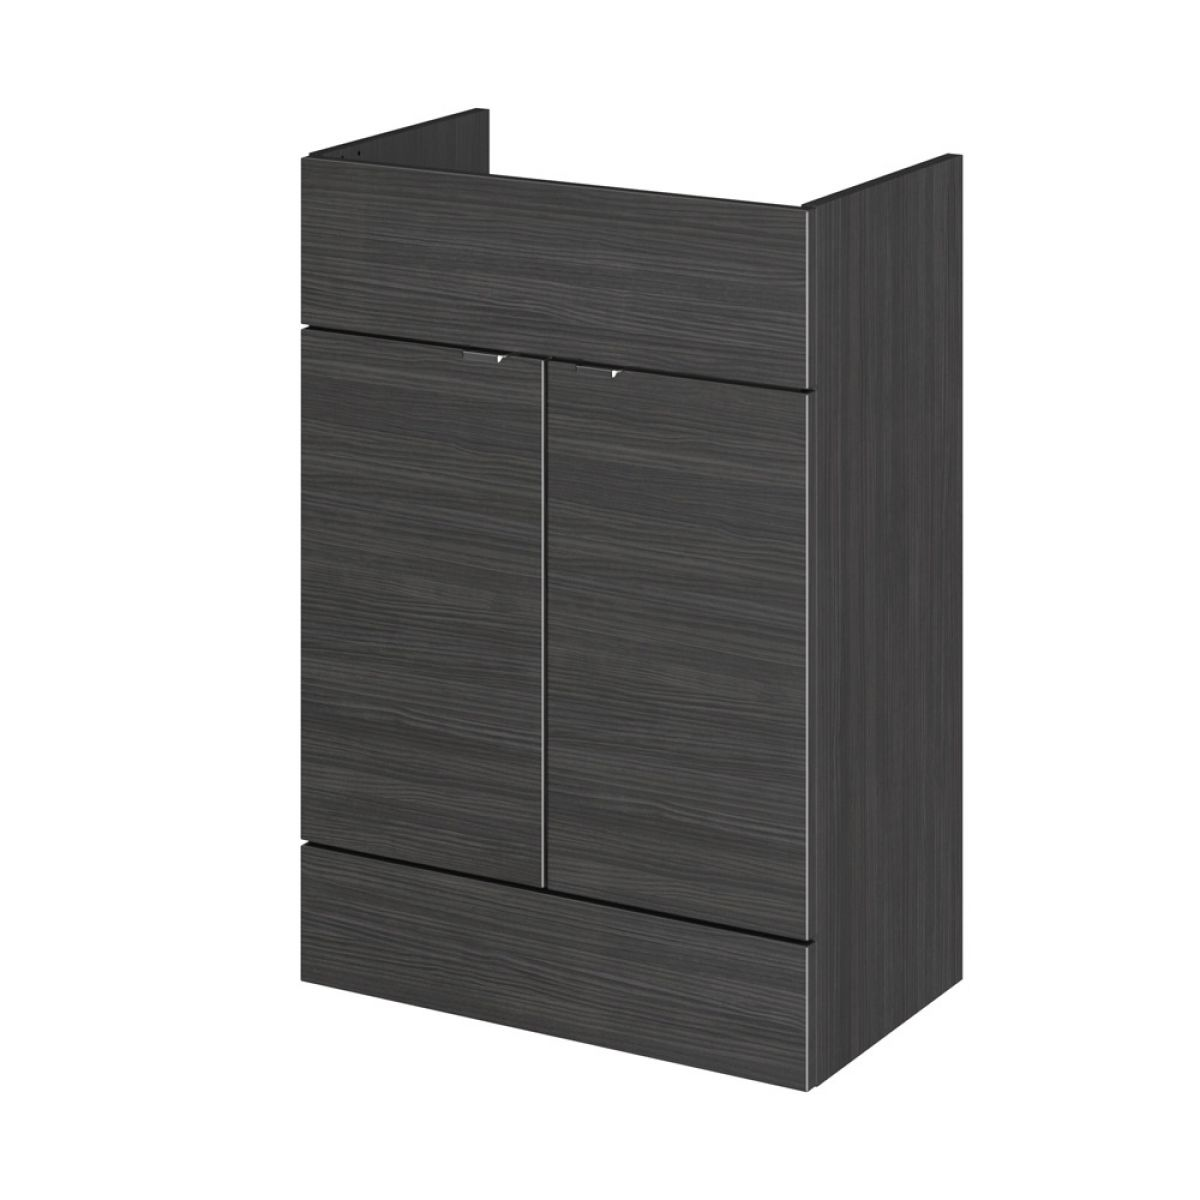 Hudson Reed Fusion Hacienda Black Full Depth Storage Furniture Pack 1500mm